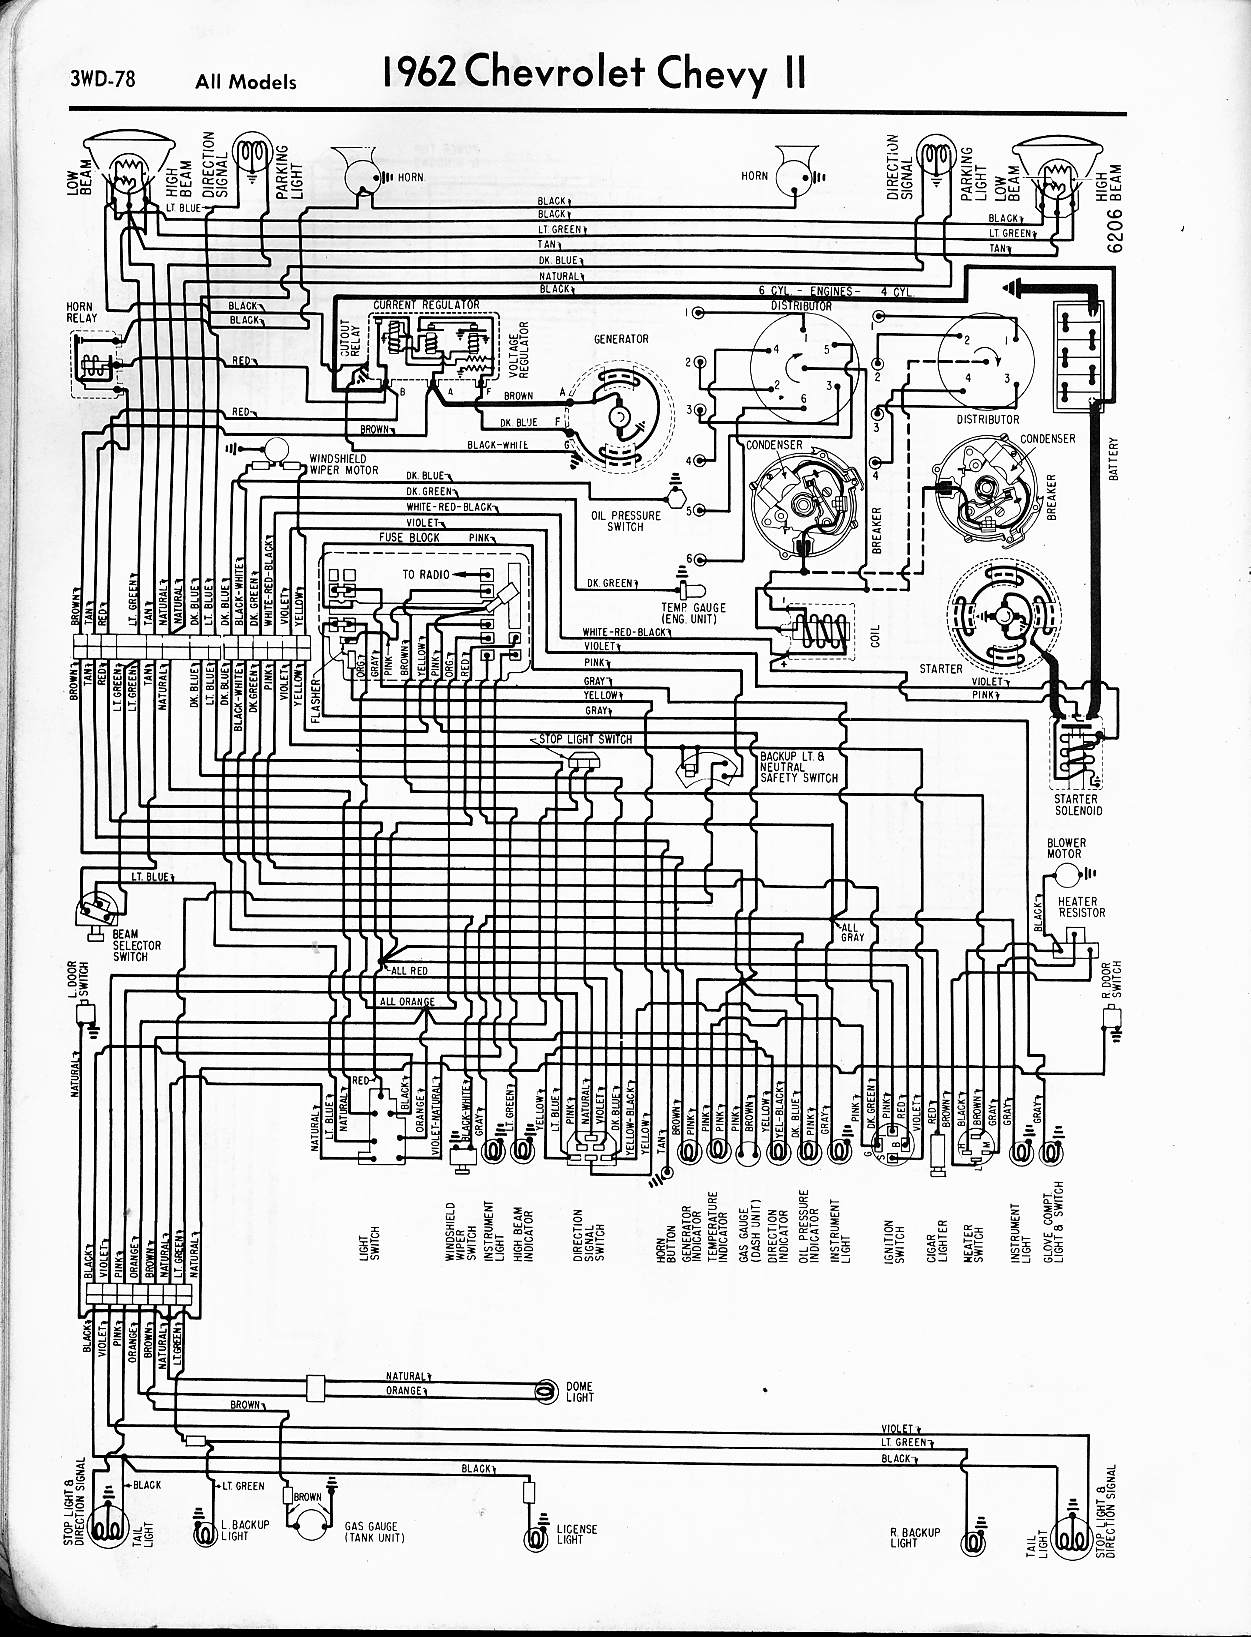 hight resolution of 1973 chevy nova wiring harness diagram data wiring diagram today 71 nova wiring diagram 1973 chevy